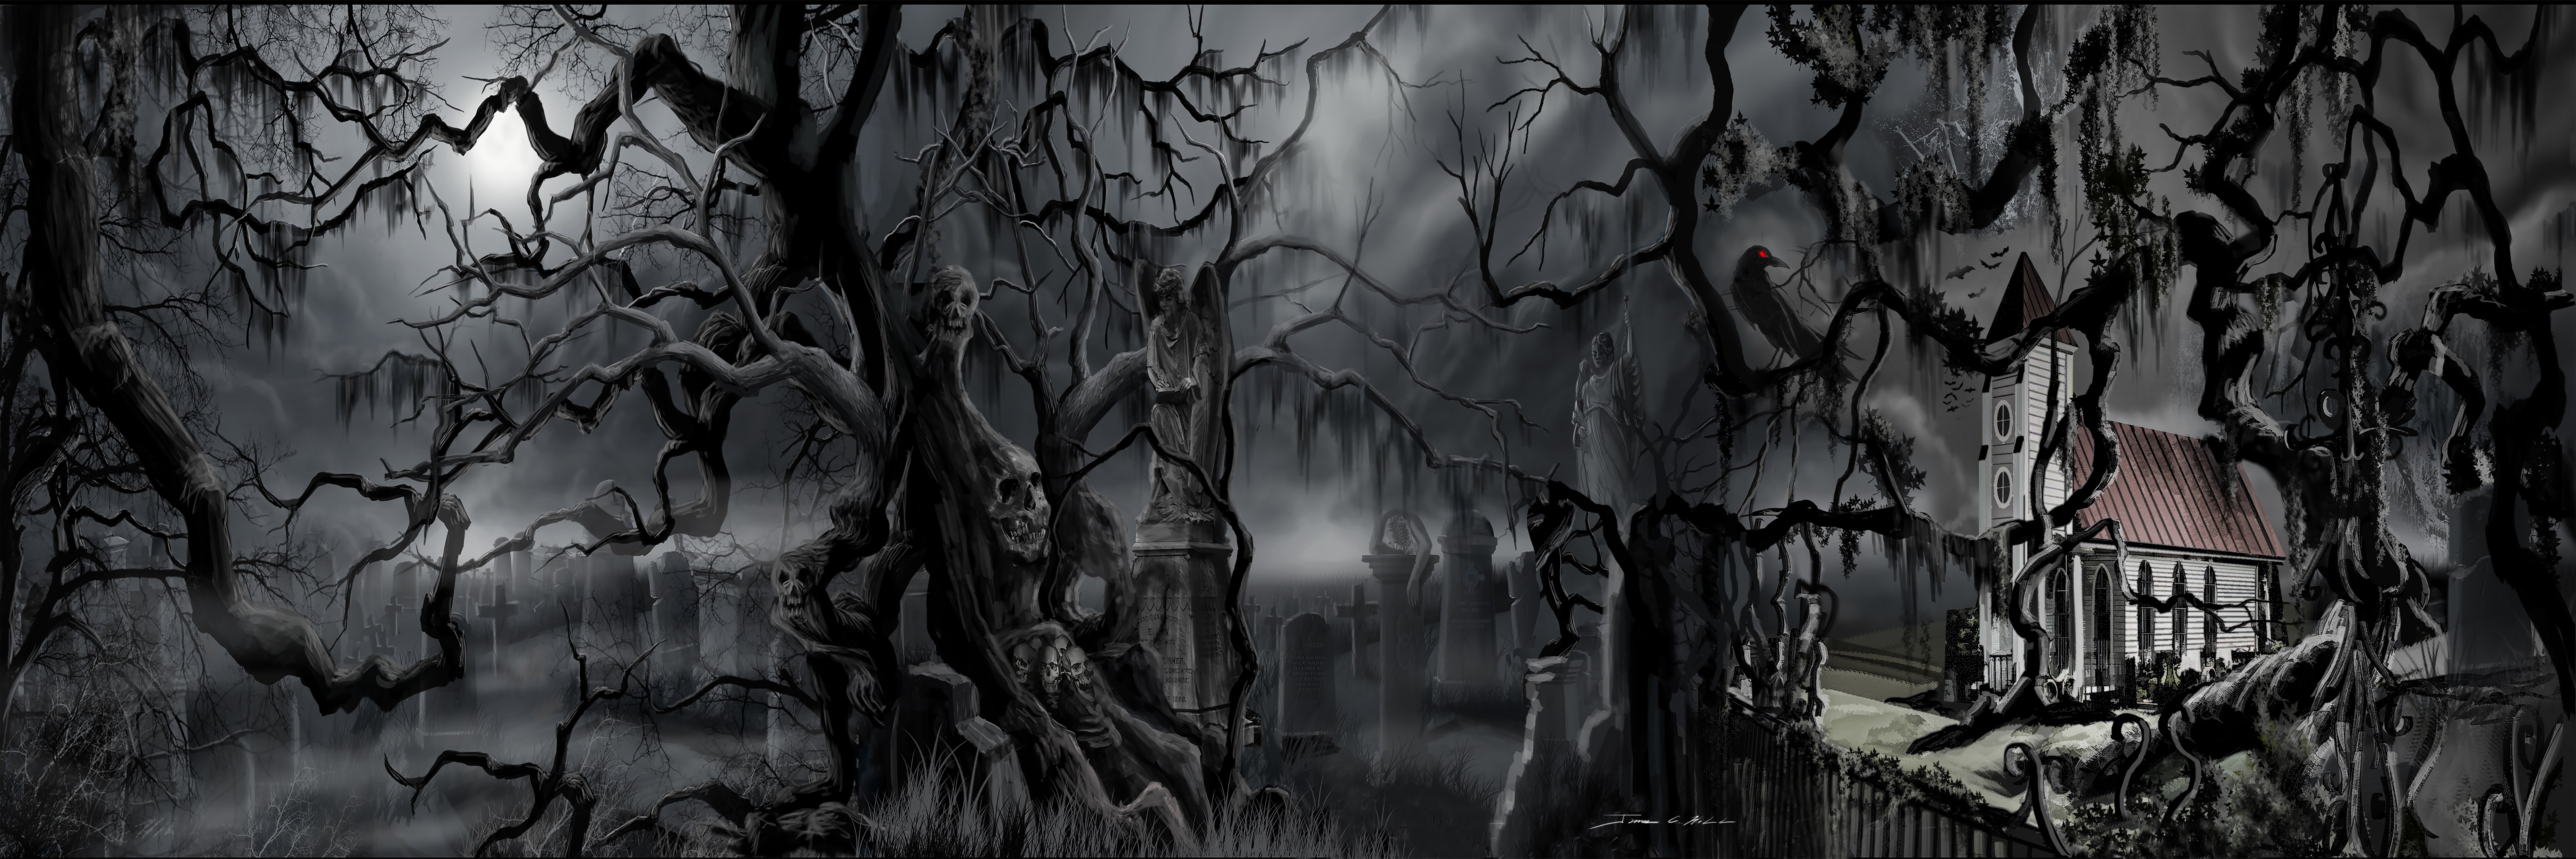 James Hill; Darkness In The Midnight Hour, 2020, Original Digital Painting, 36 x 12 inches. Artwork description: 241 Painting of a mysterious cemetery - Classical Horror Style - Vintage Hollywood - Creepy, Eerie, Haunted, Supernatural...